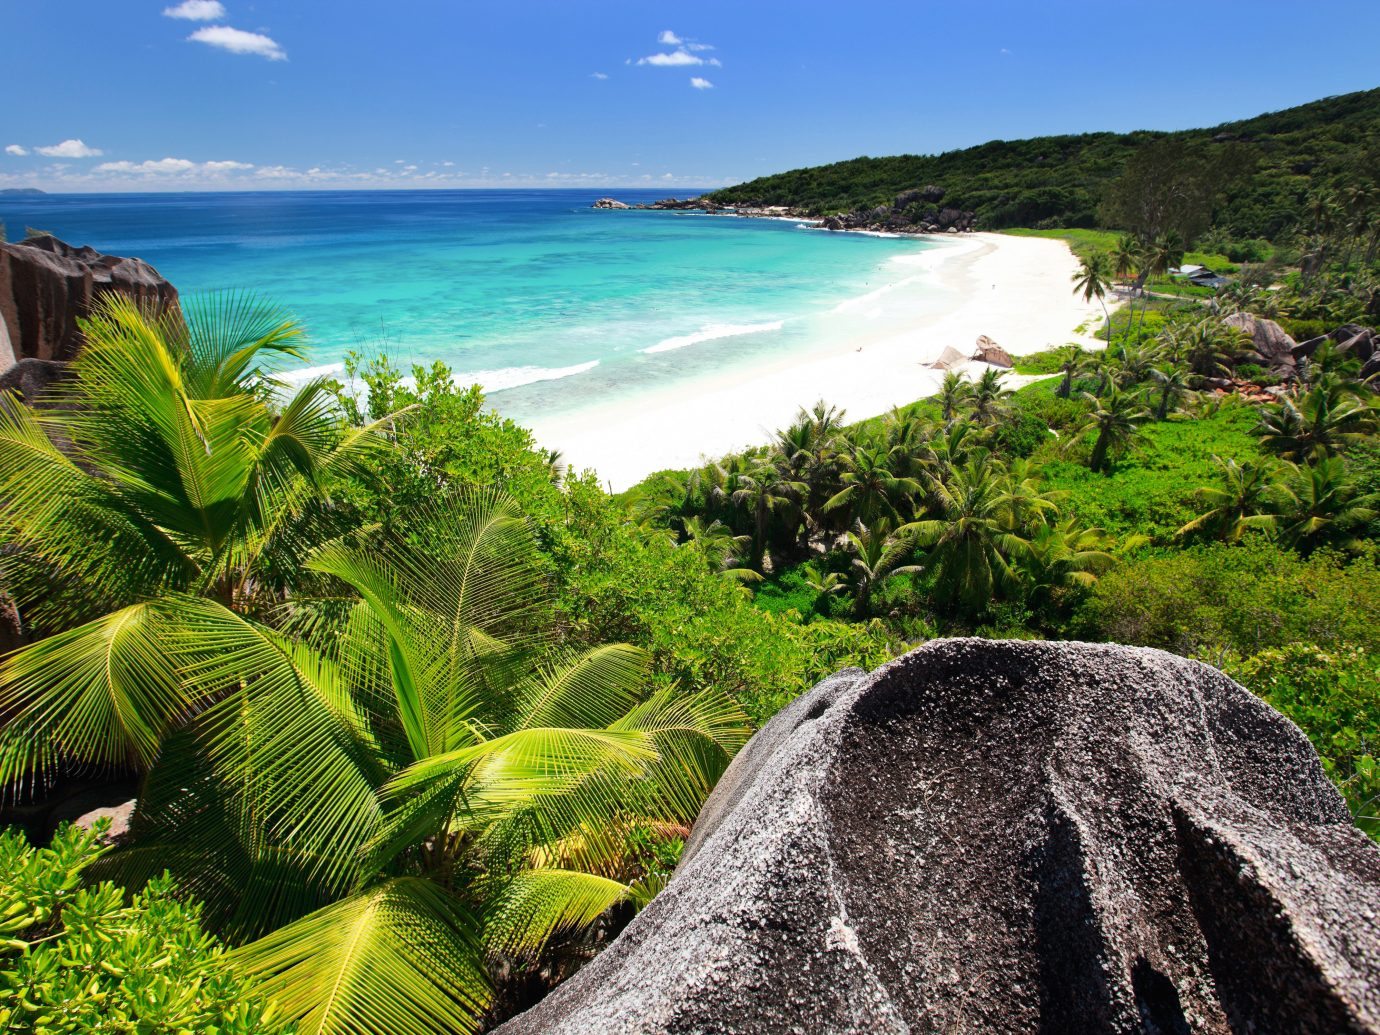 Beach Beachfront Hotels Luxury Ocean Tropical sky outdoor water Nature geographical feature landform Coast body of water Sea tropics vacation rock caribbean Jungle bay landscape arecales rainforest overlooking cape terrain plant beautiful